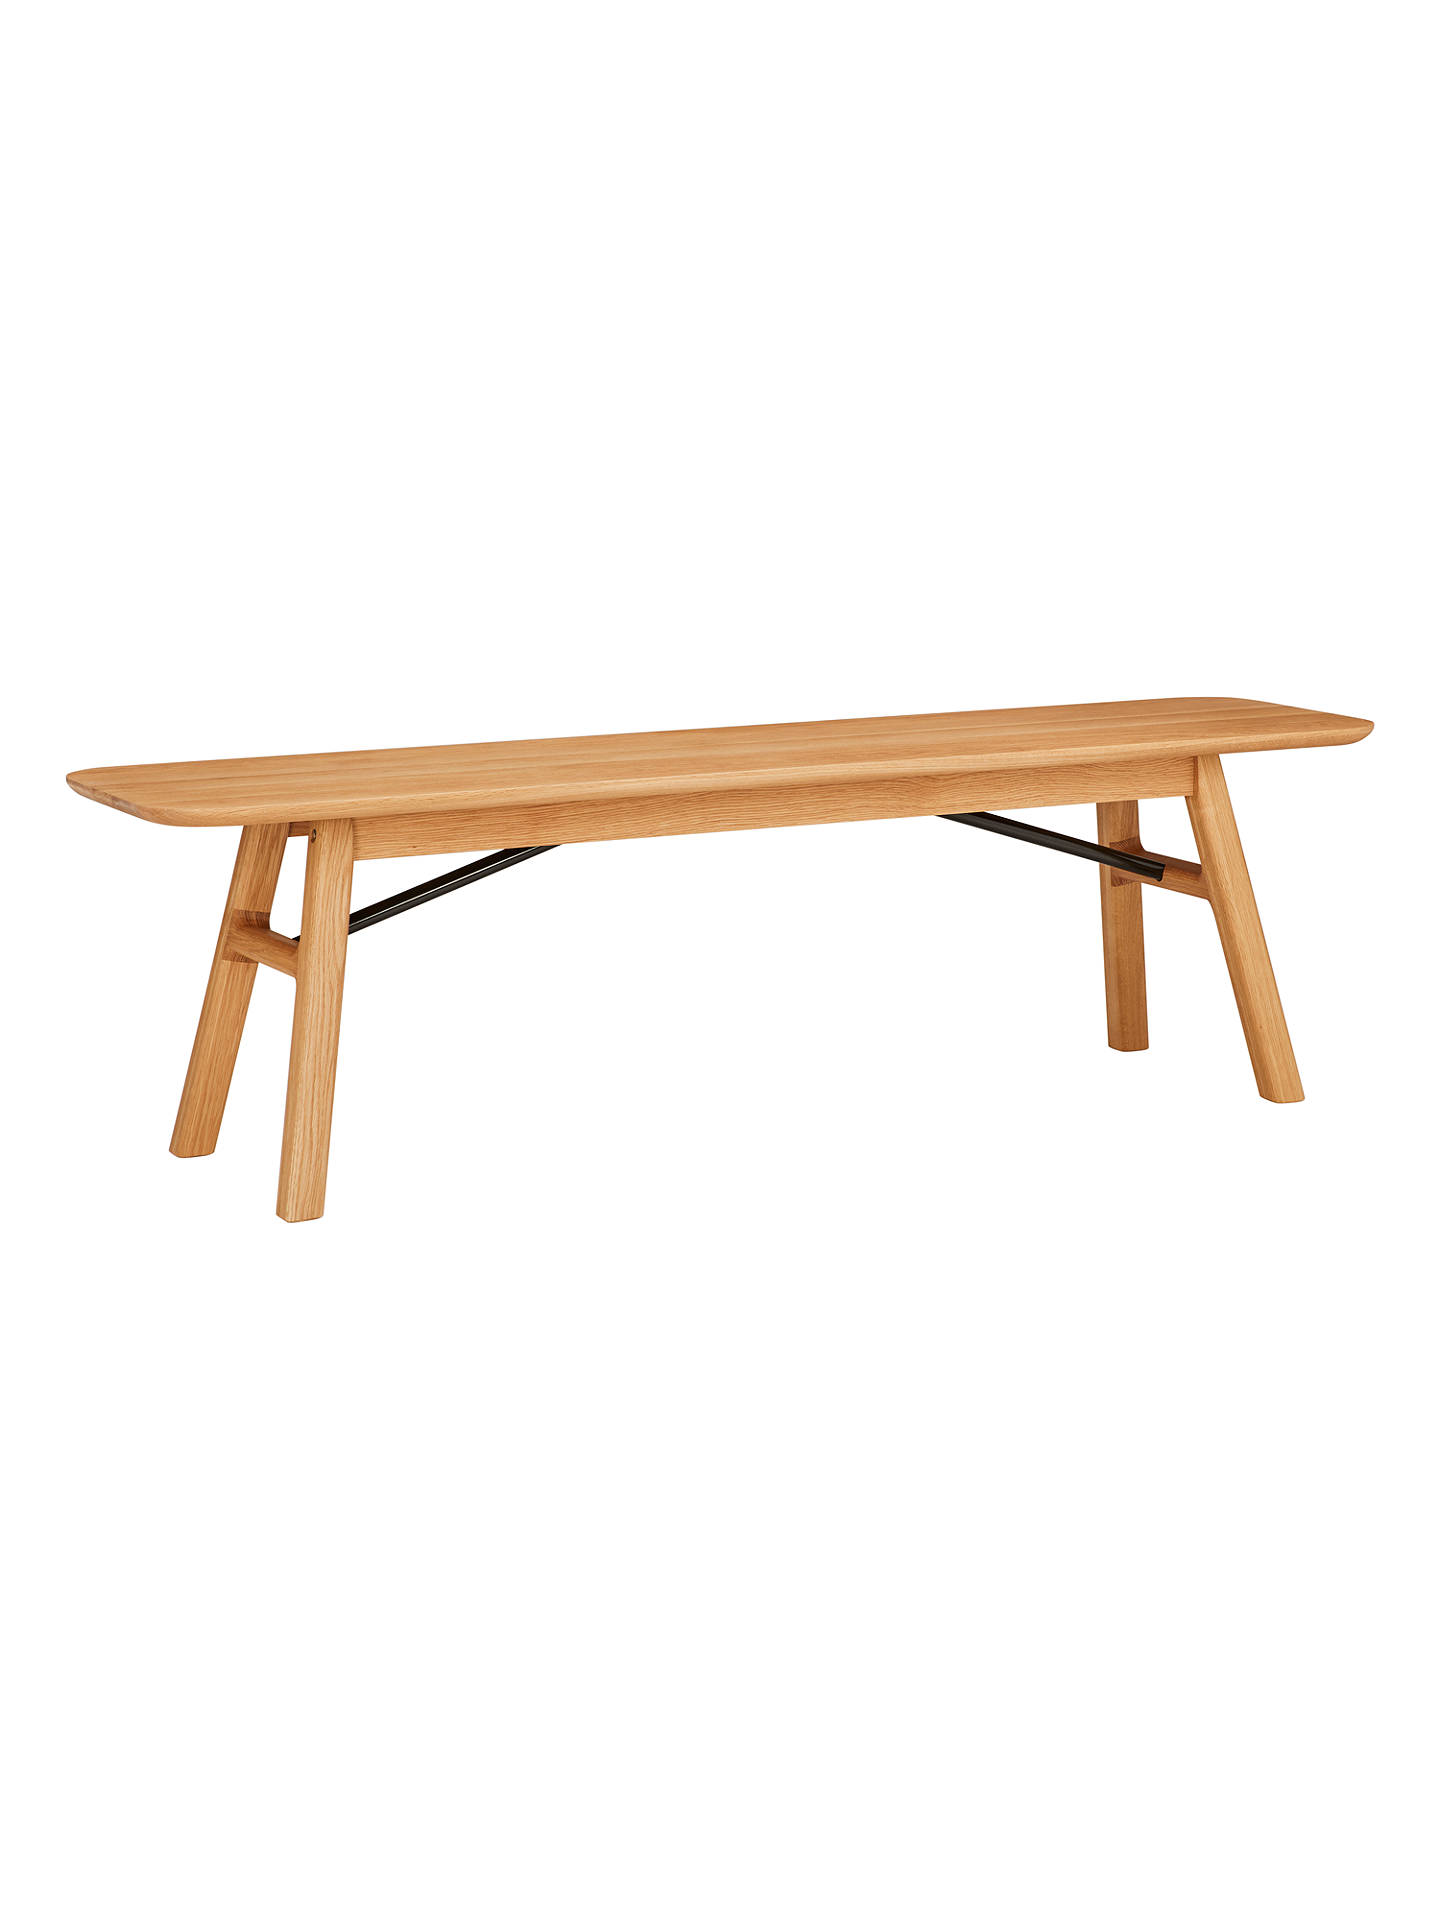 Buy Design Project by John Lewis No.036 Dining Bench, Oak Online at johnlewis.com